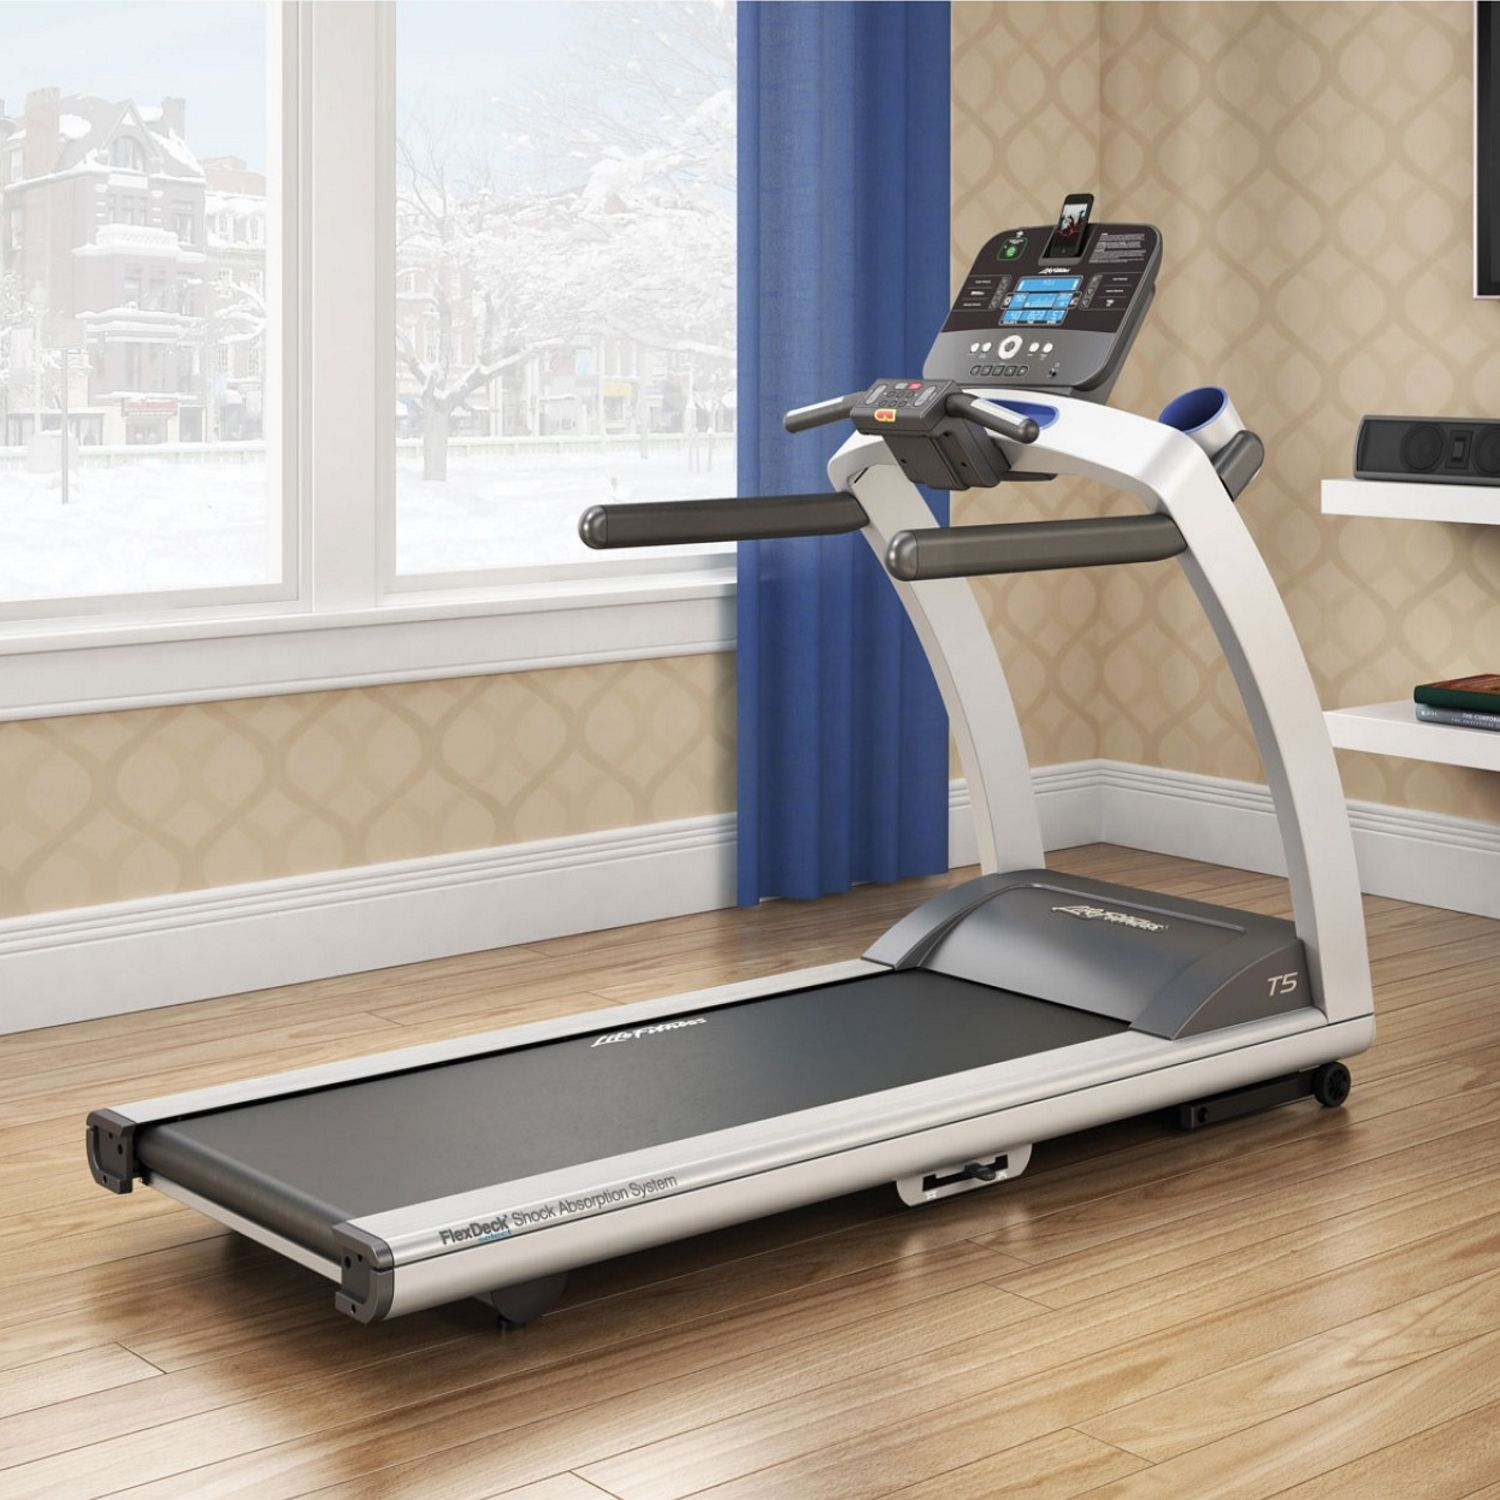 Life Fitness Treadmill Deck Replacement: Life Fitness T5 Treadmill With Track Connect Console (was